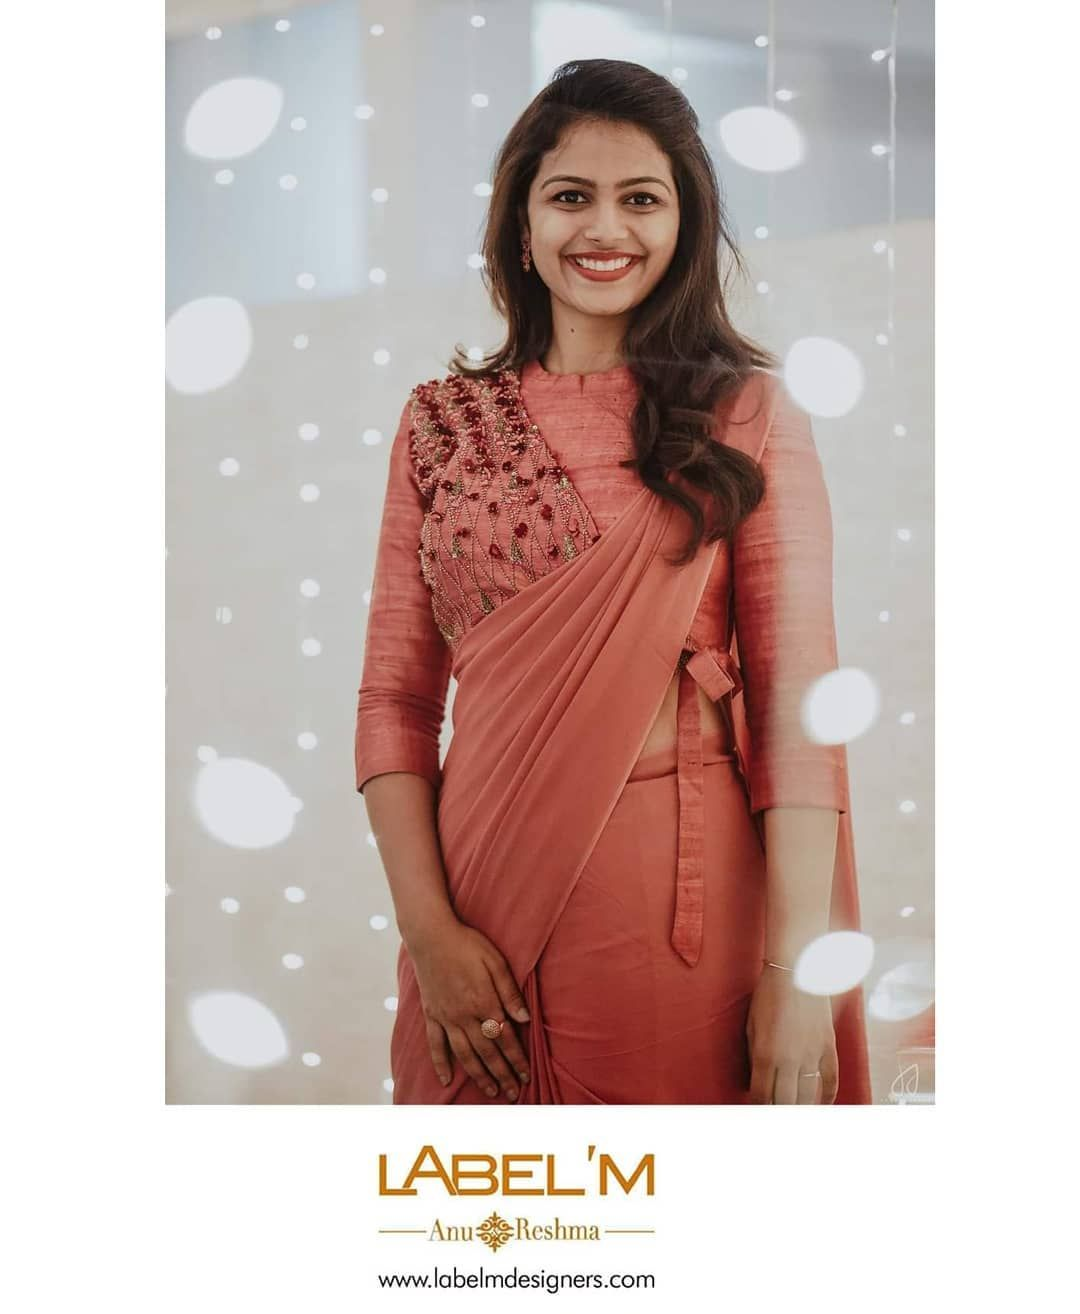 """Label'M on Instagram: """"Bride Roopa Ann Mathew in a peach saree with handworked blouse for her prewedding eve. This blouse is intricately hand worked with 3D…"""""""